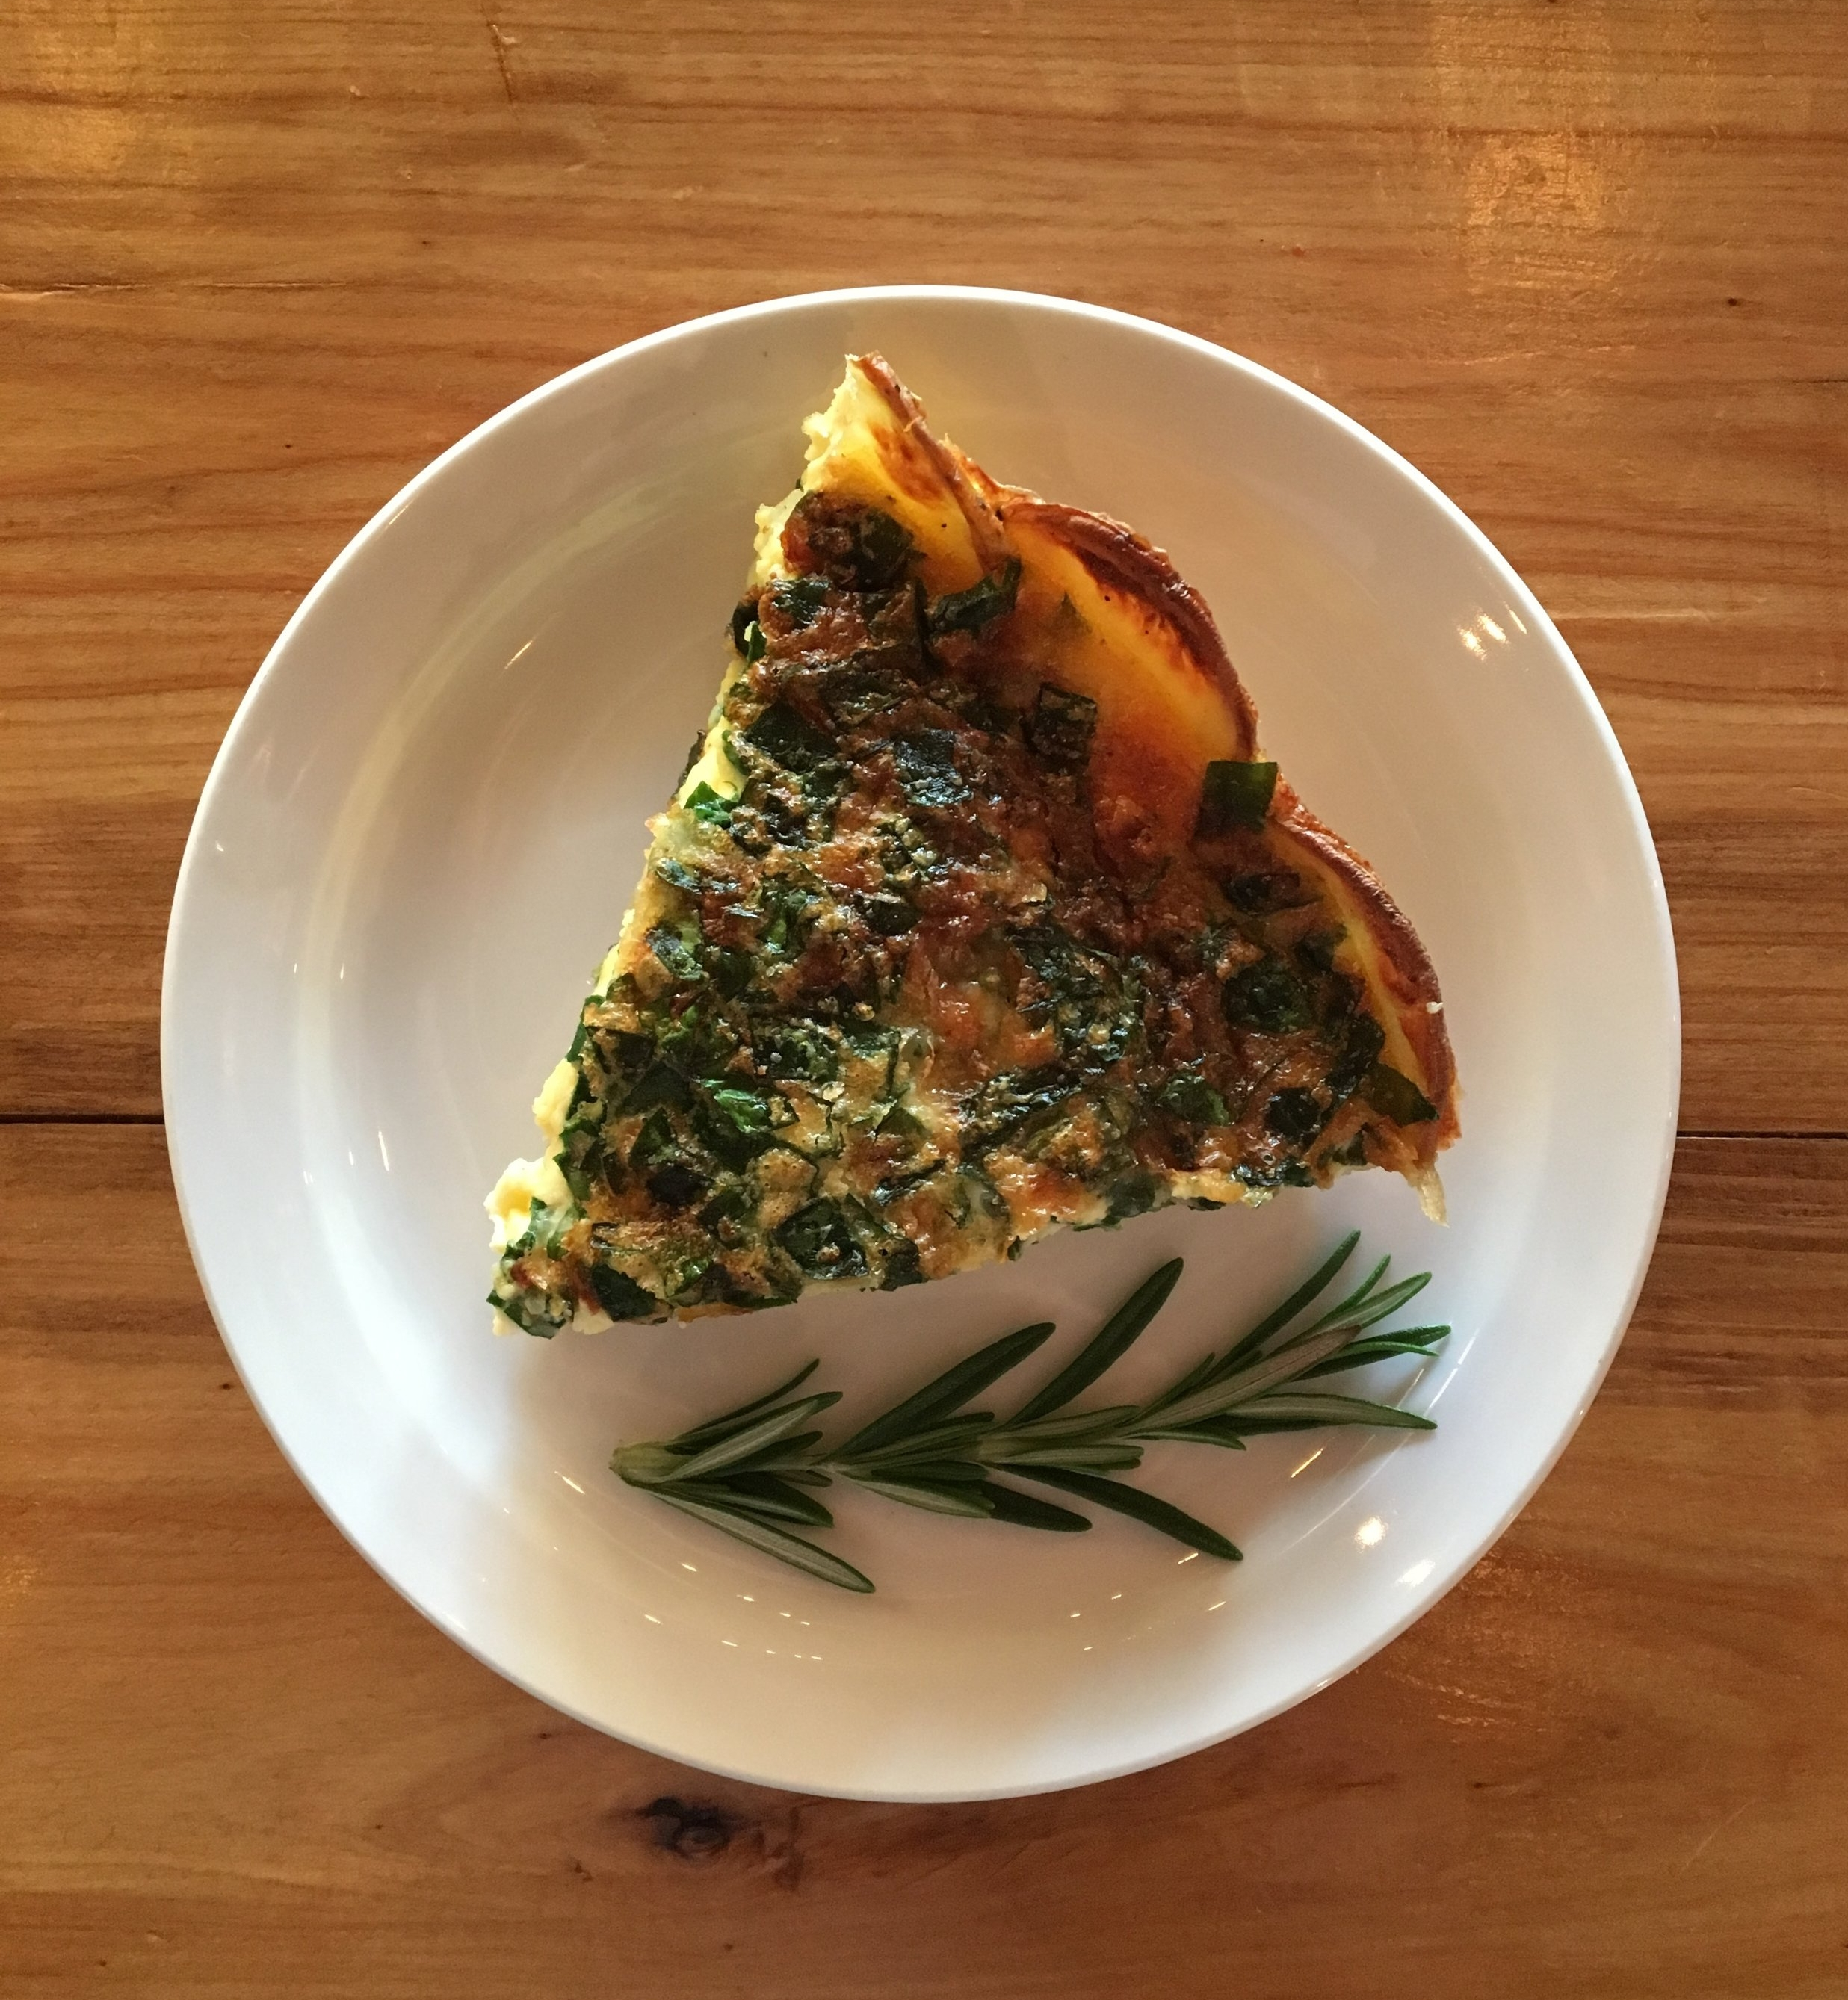 Quiche (GF)  Made with a potato crust, spinach and gruyere cheese. Other ingredients change seasonally.